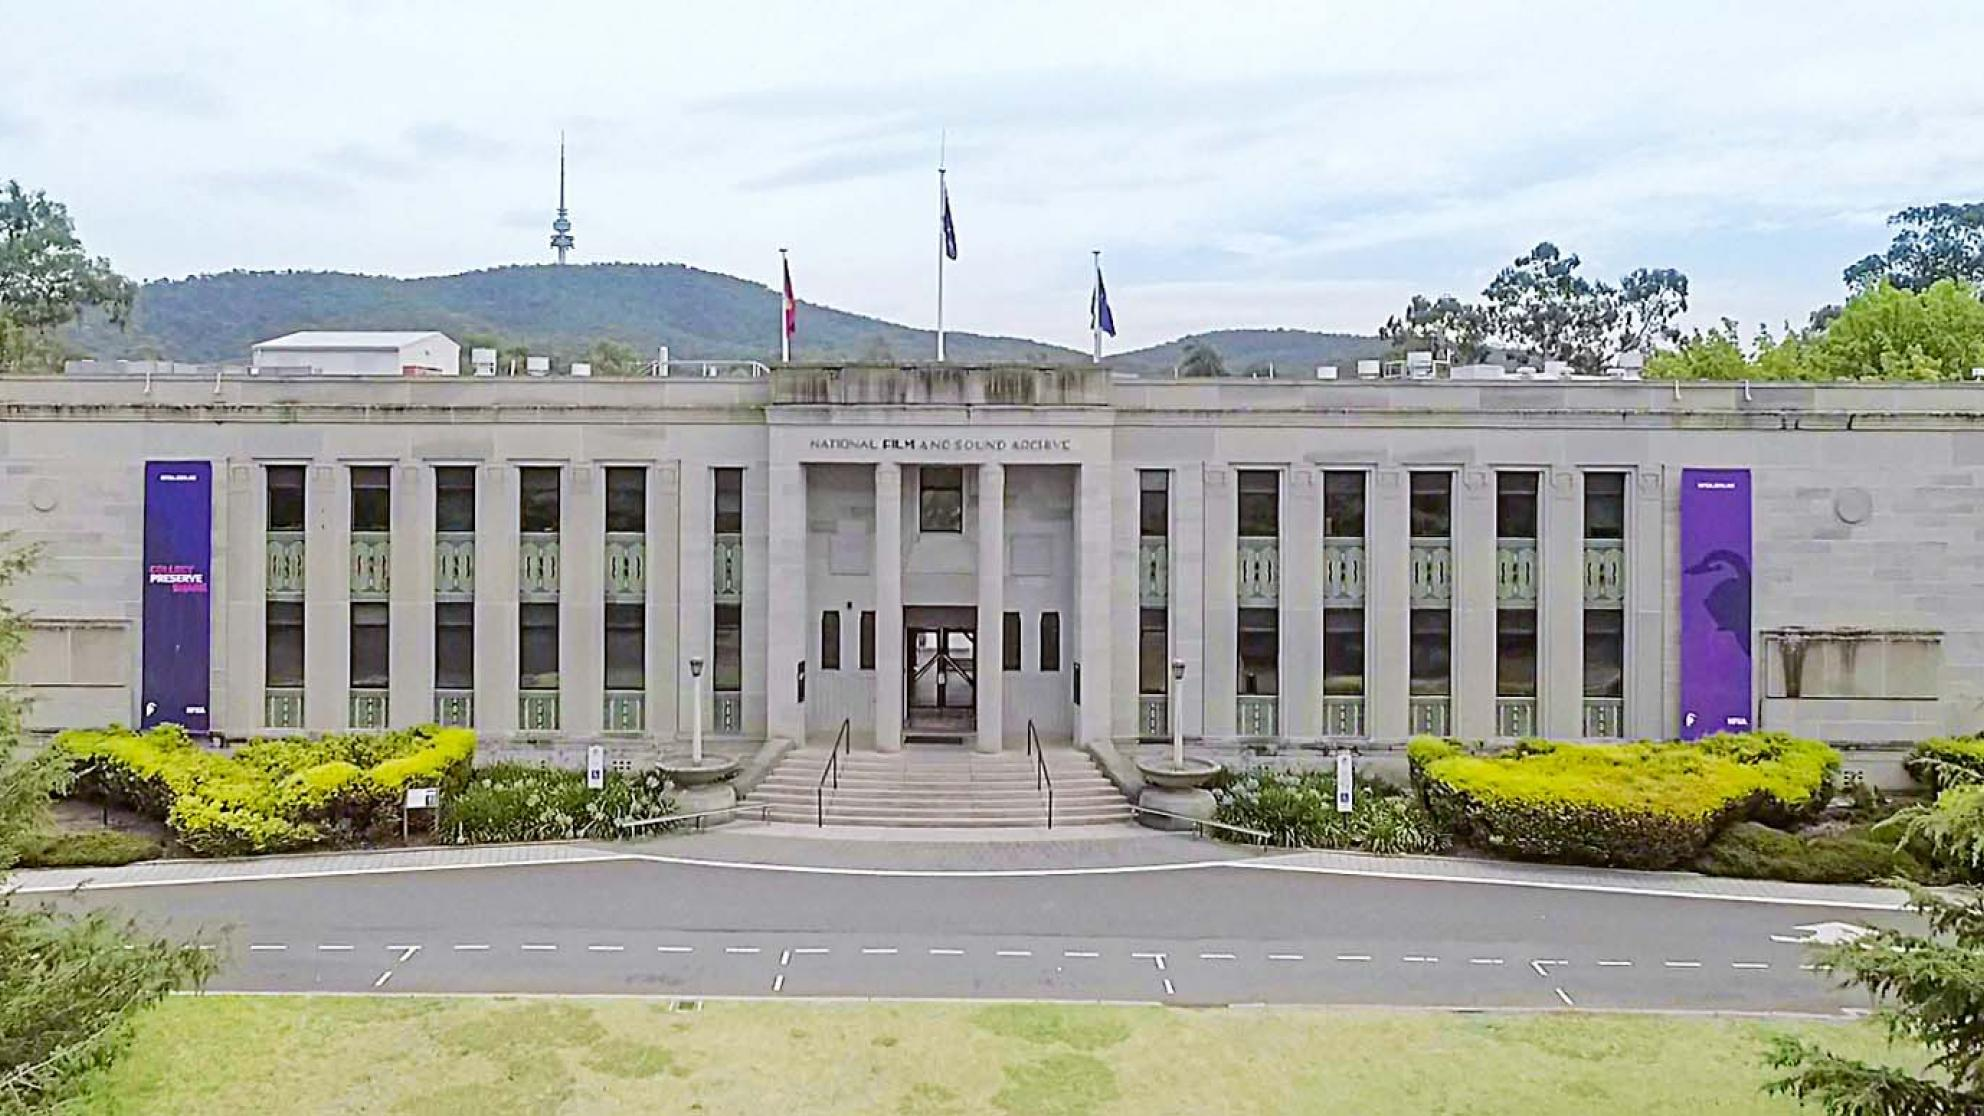 The NFSA building in Canberra